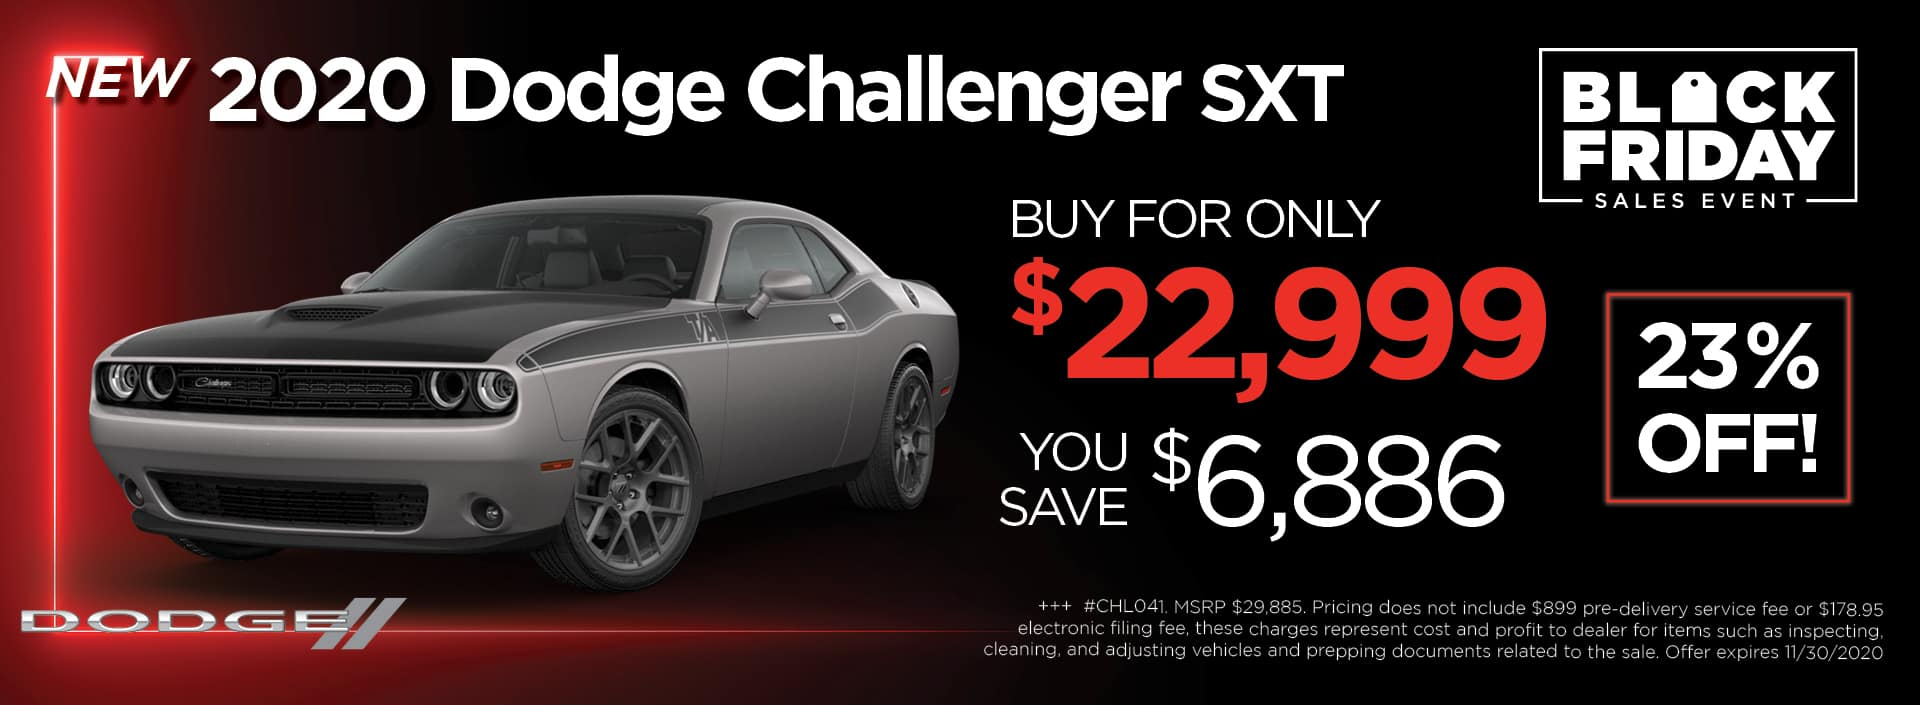 Dodge Challenger BlackFriday